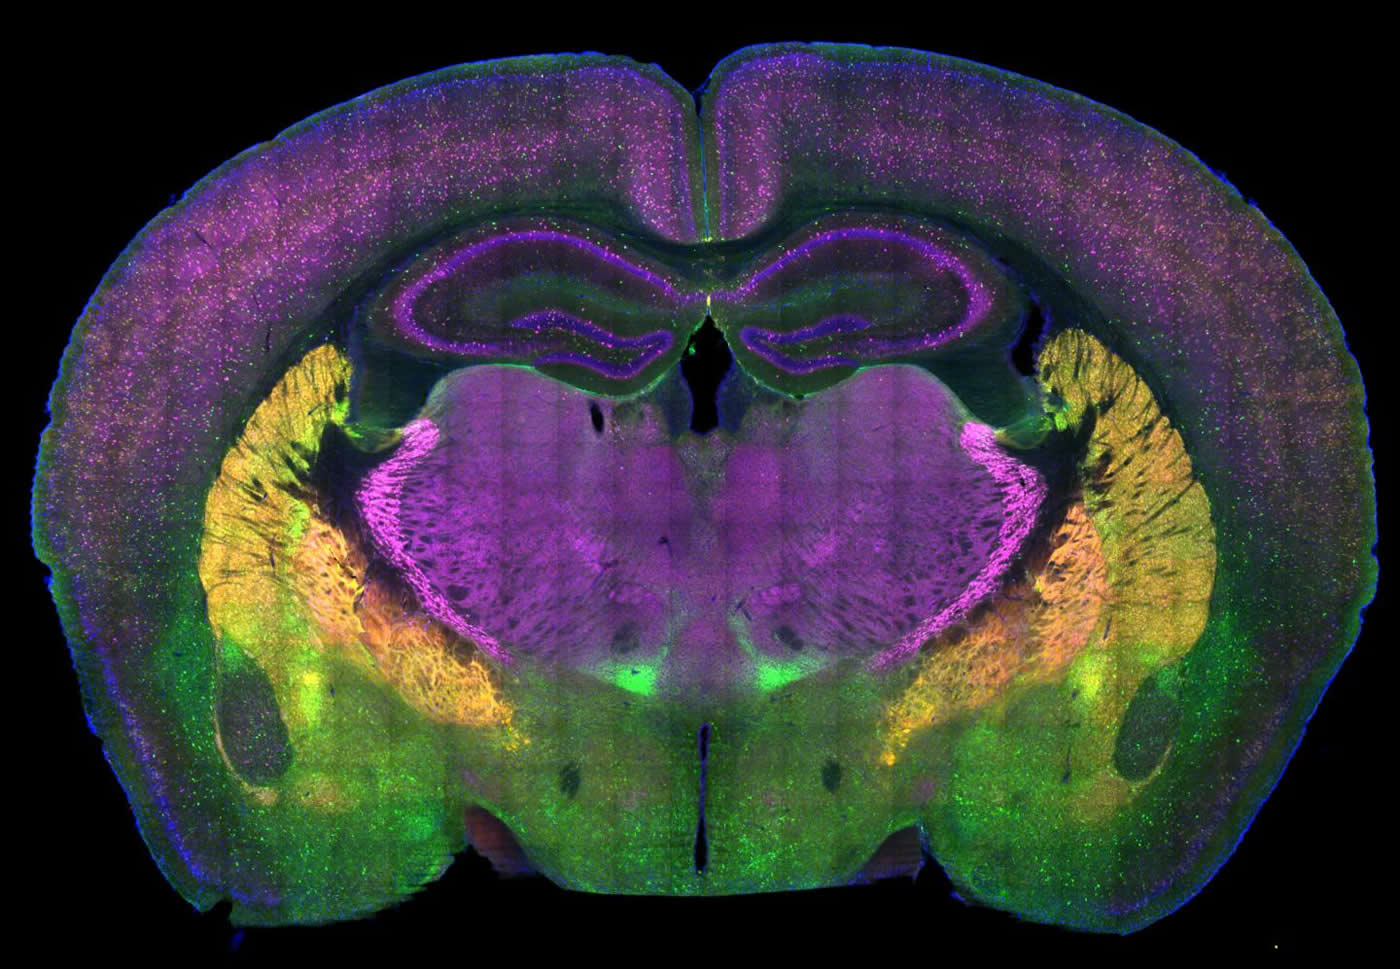 This shows a brain slice